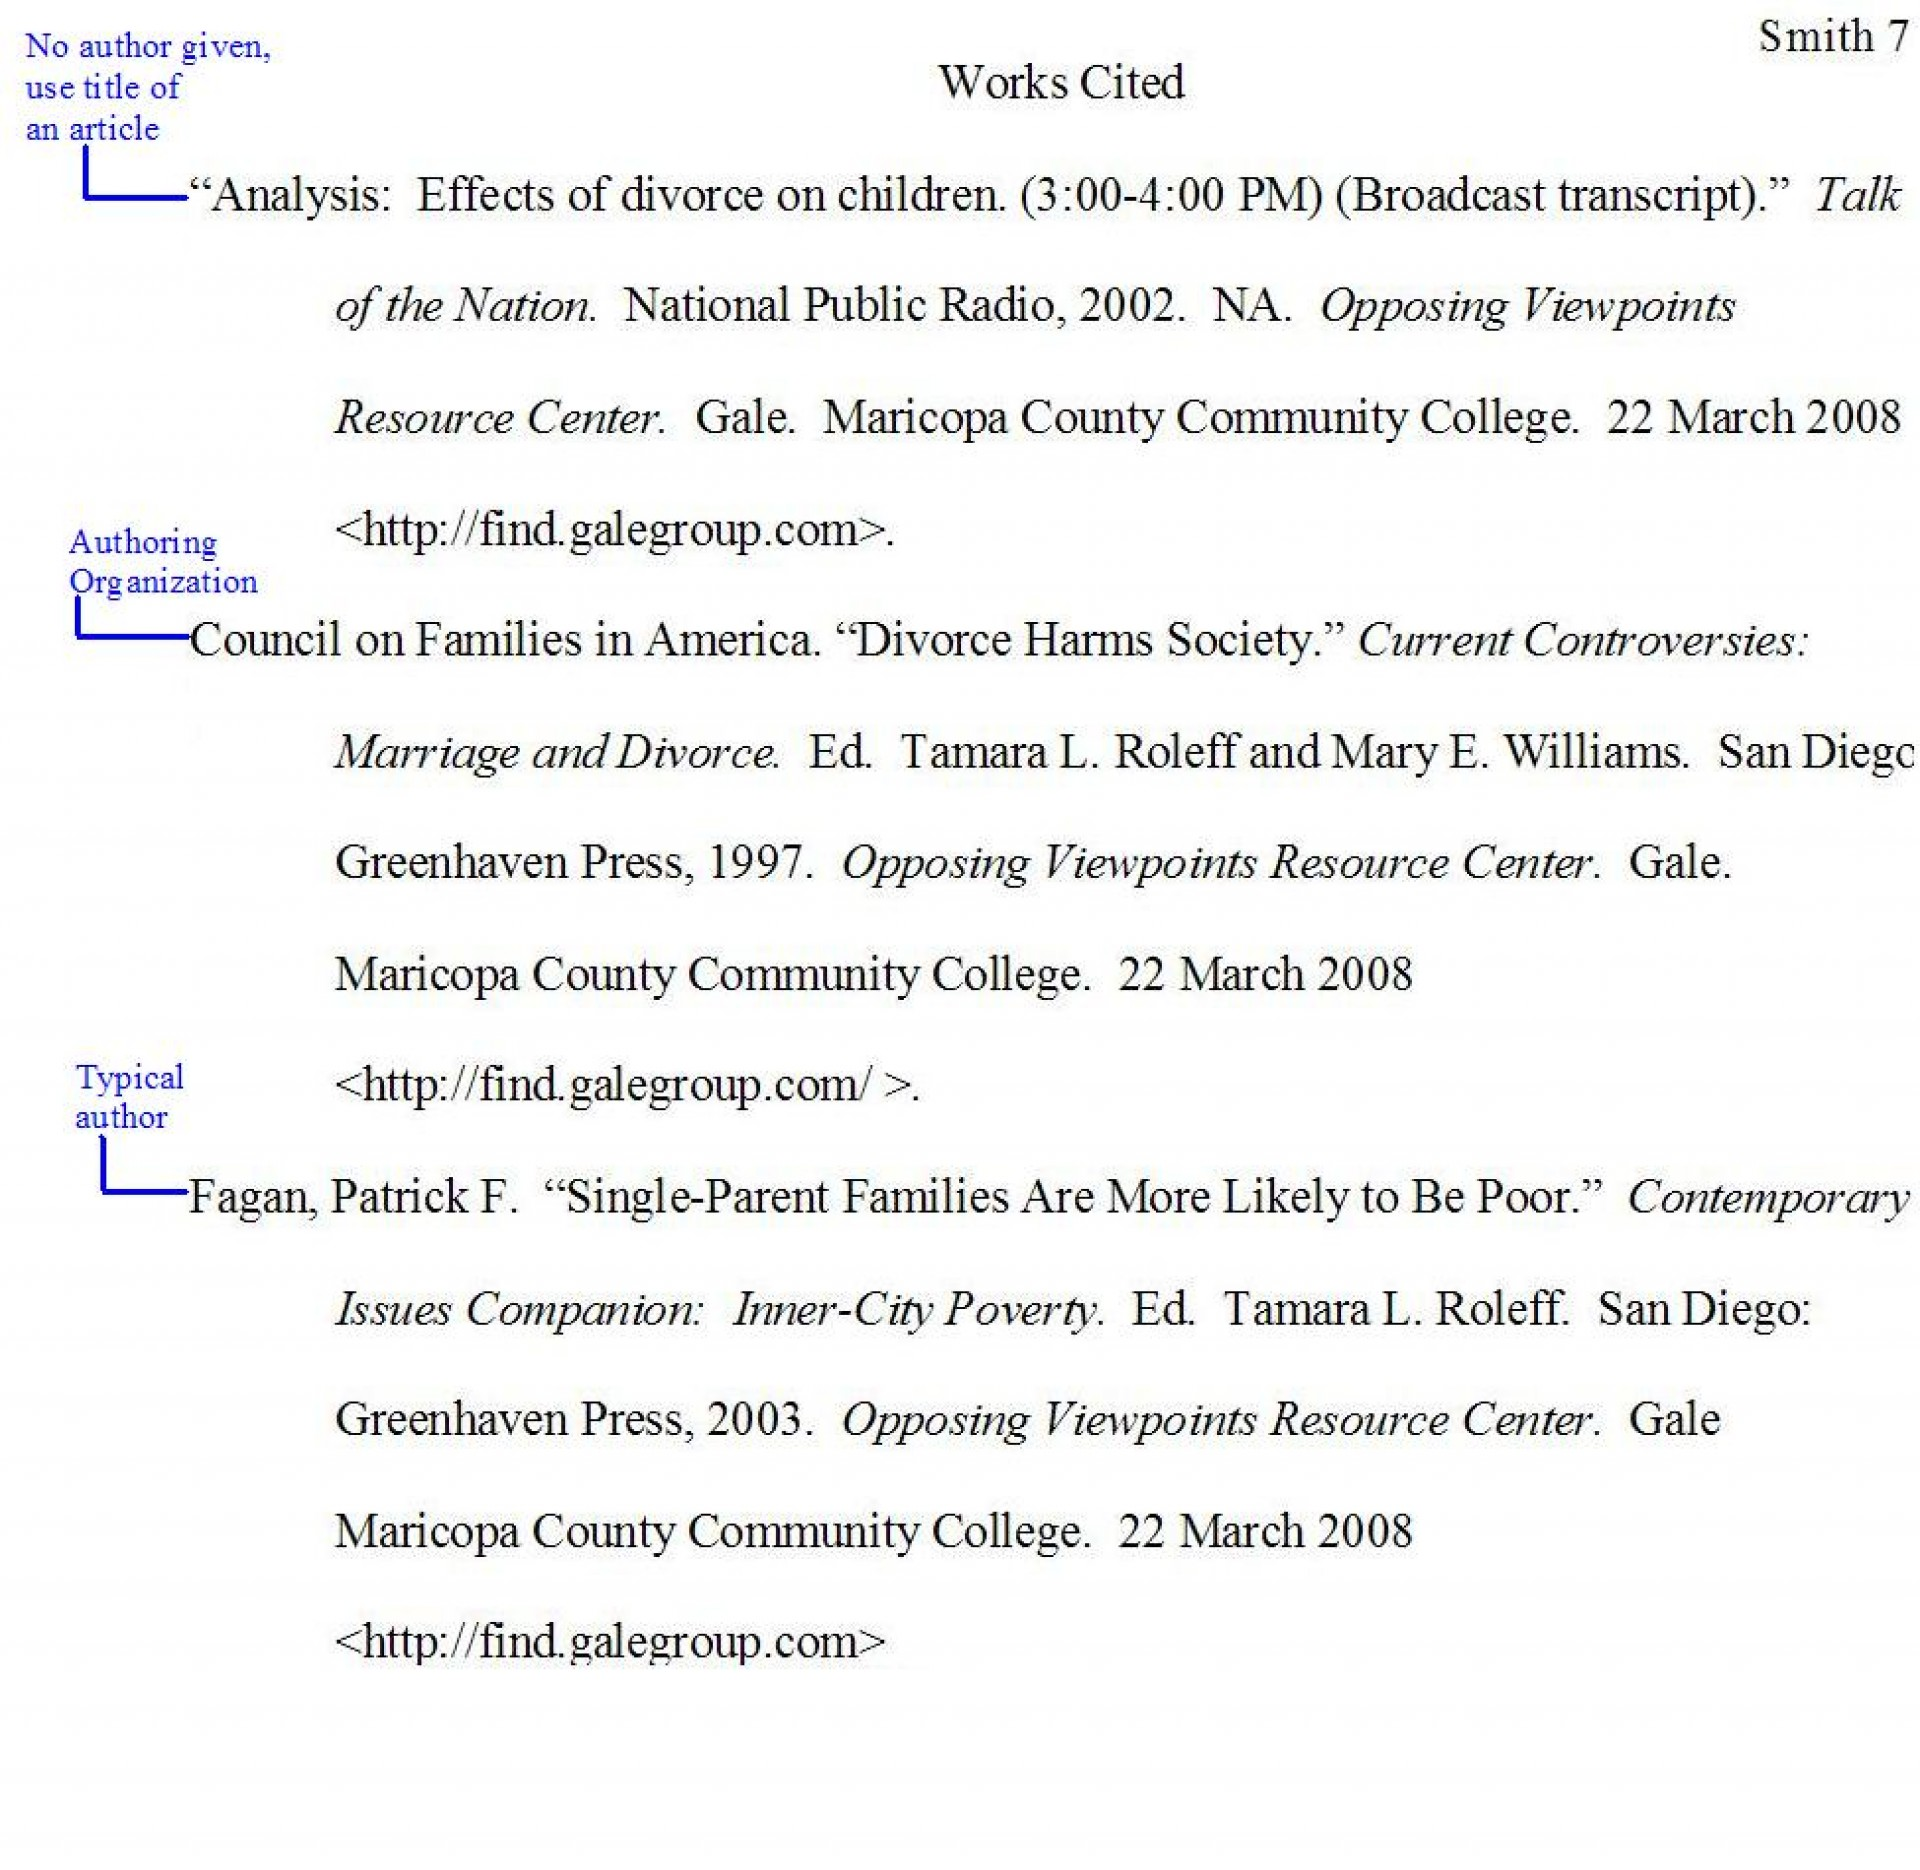 013 Samplewrkctd Jpg Essay Example How To Reference Book In Magnificent A An Cite Quote Mla Uk 1920